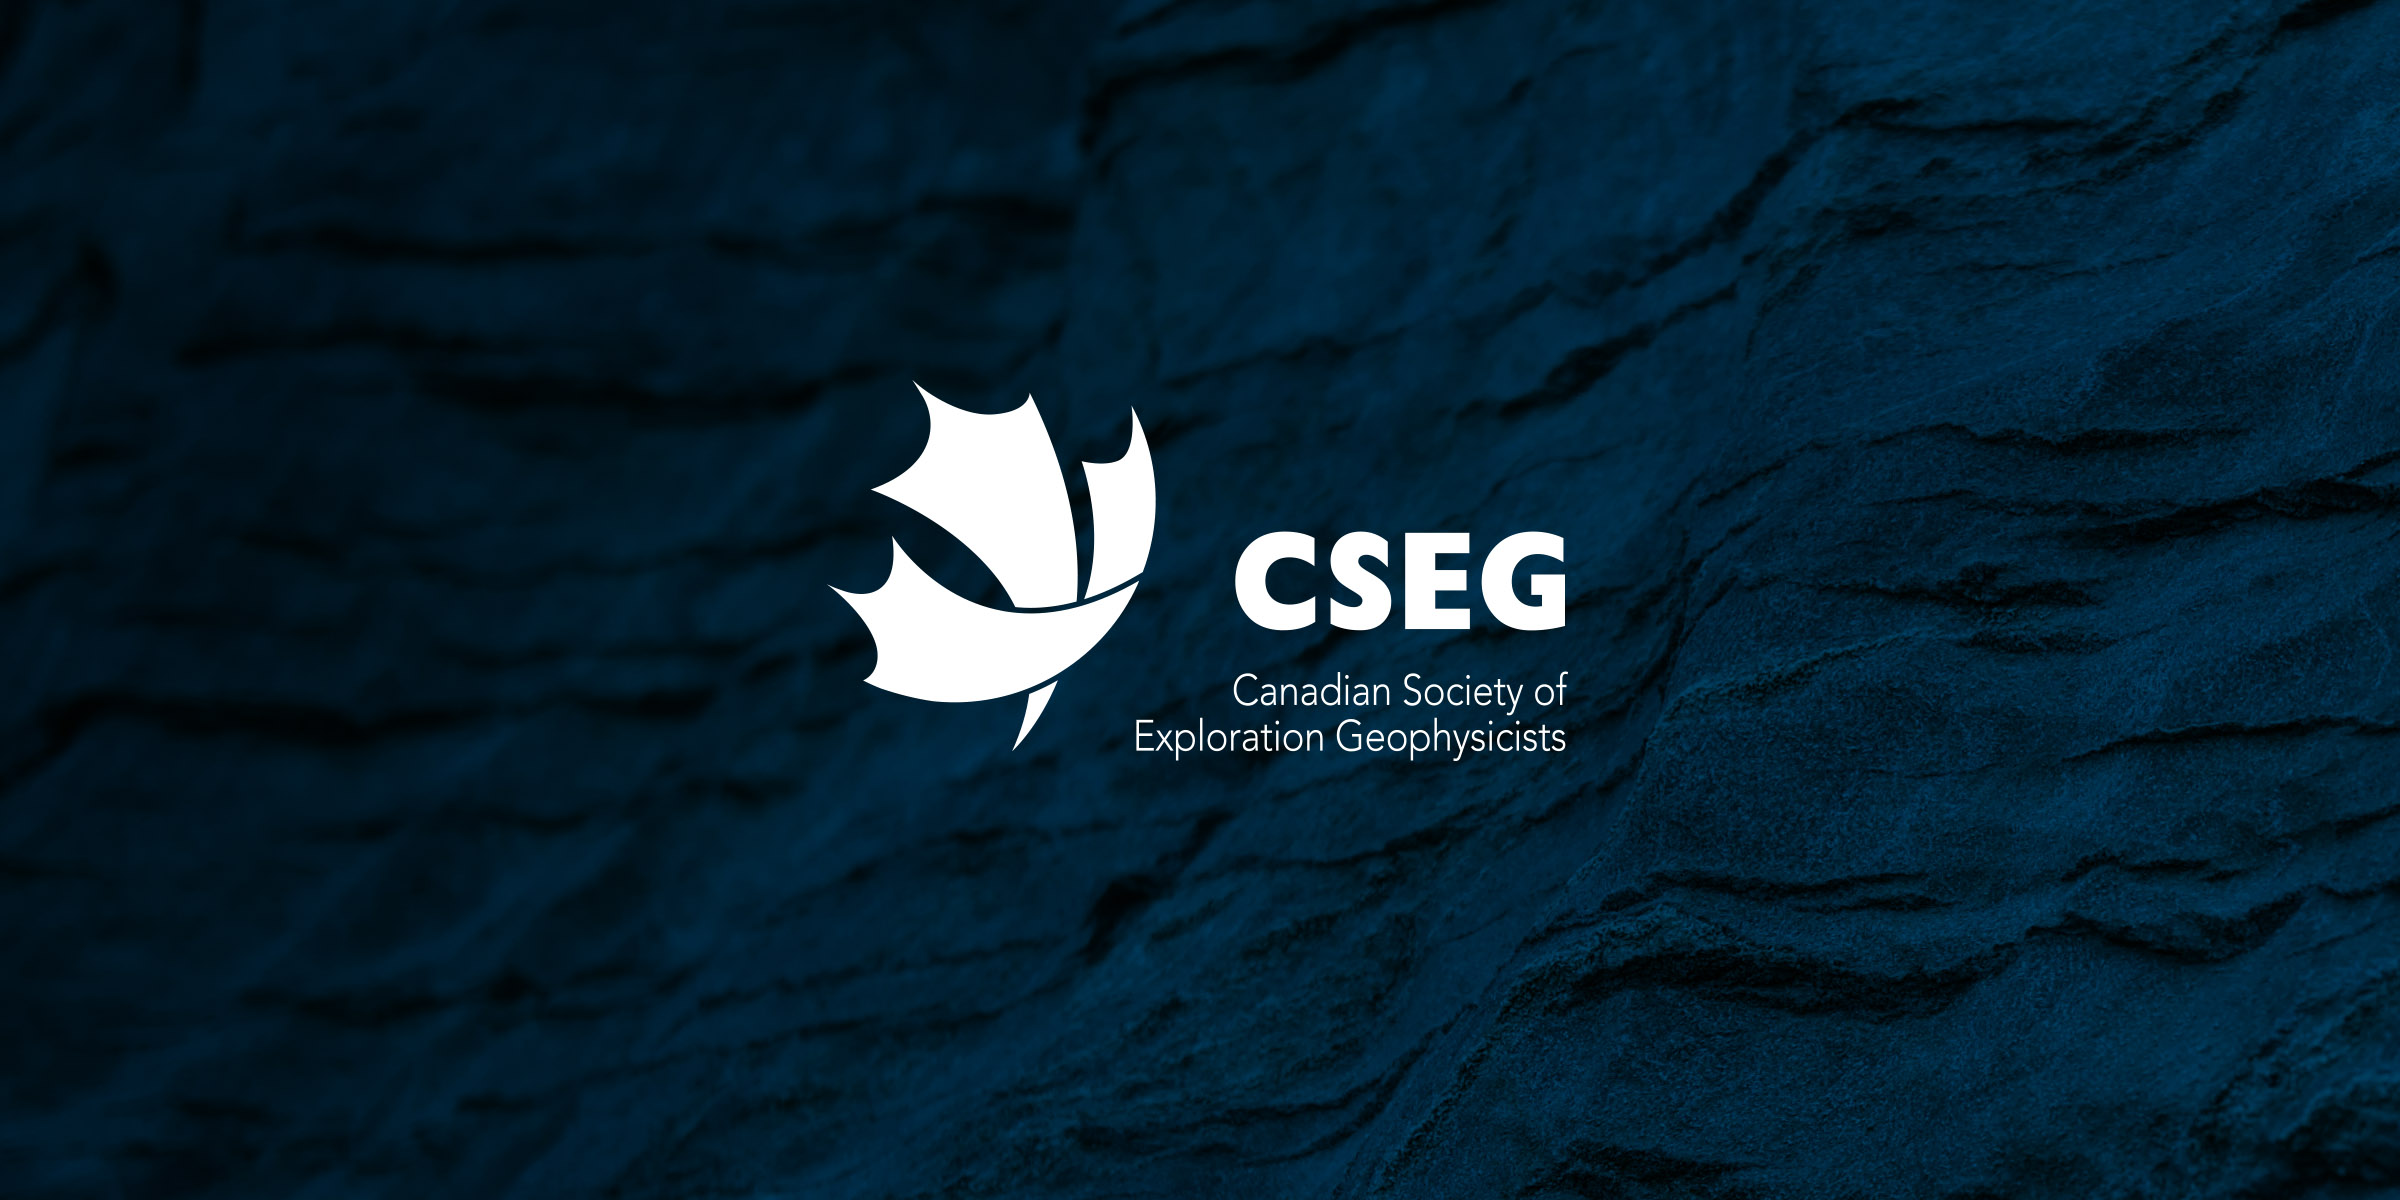 CSEG logo on a blue background